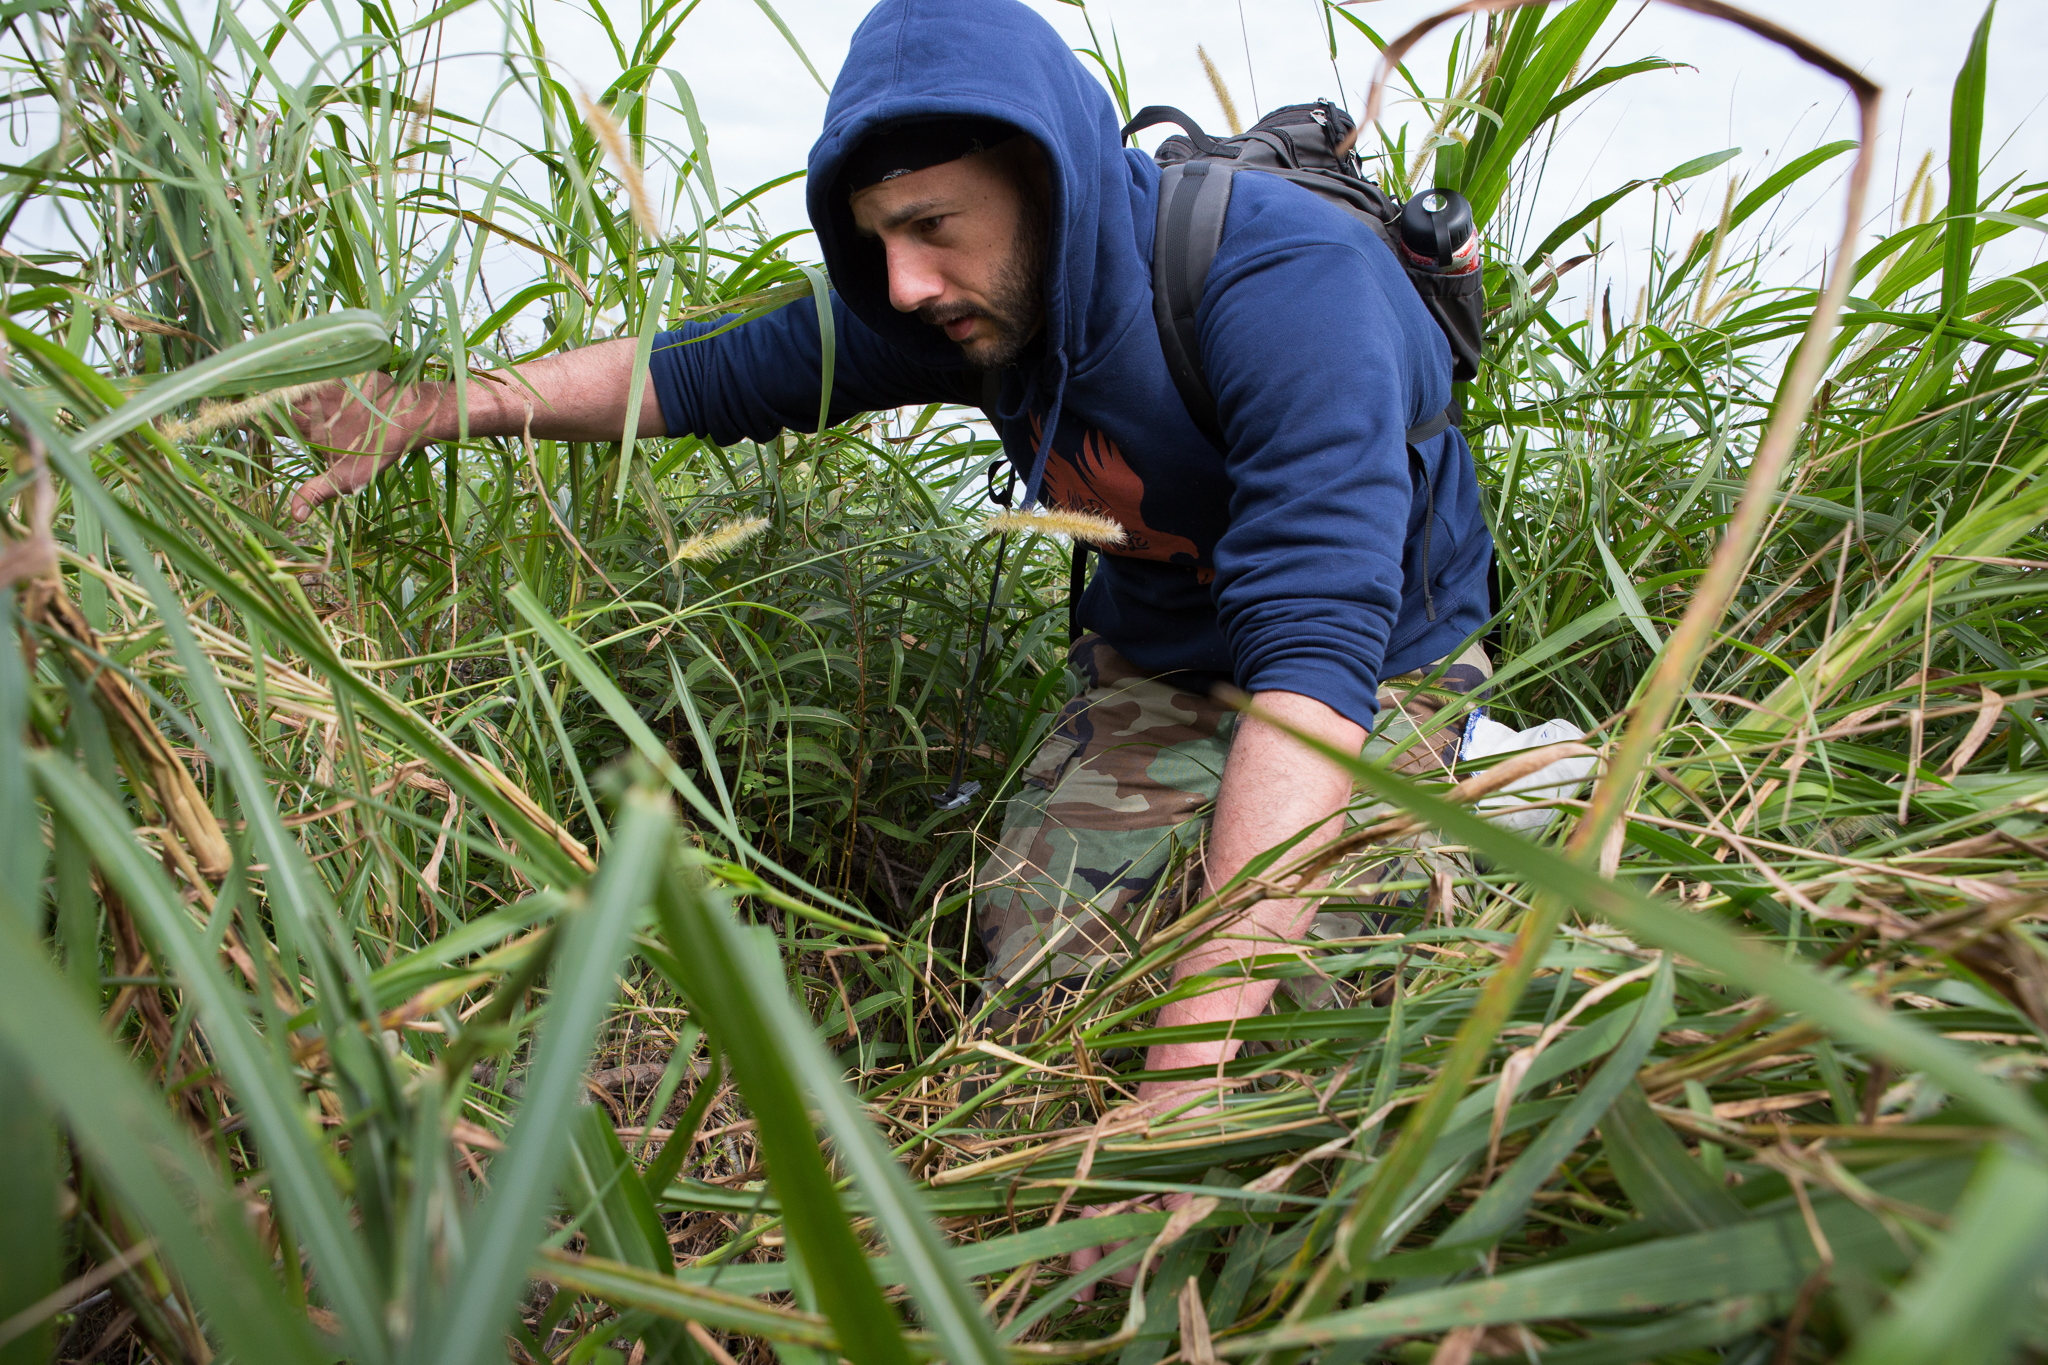 David Steen pushes his way through the tall grass in search of Burmese pythons.